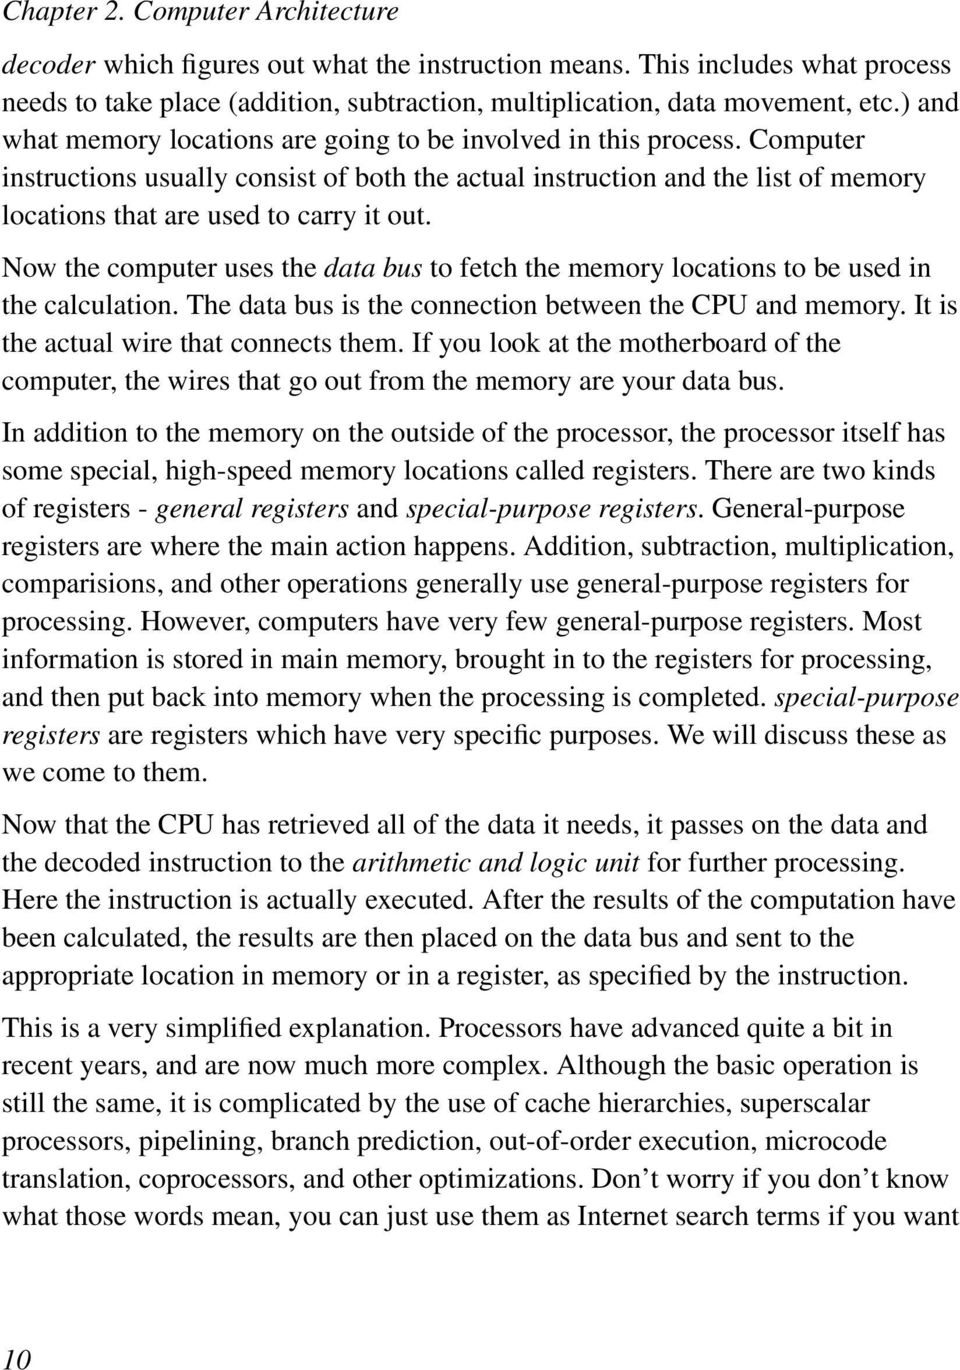 Computer instructions usually consist of both the actual instruction and the list of memory locations that are used to carry it out.